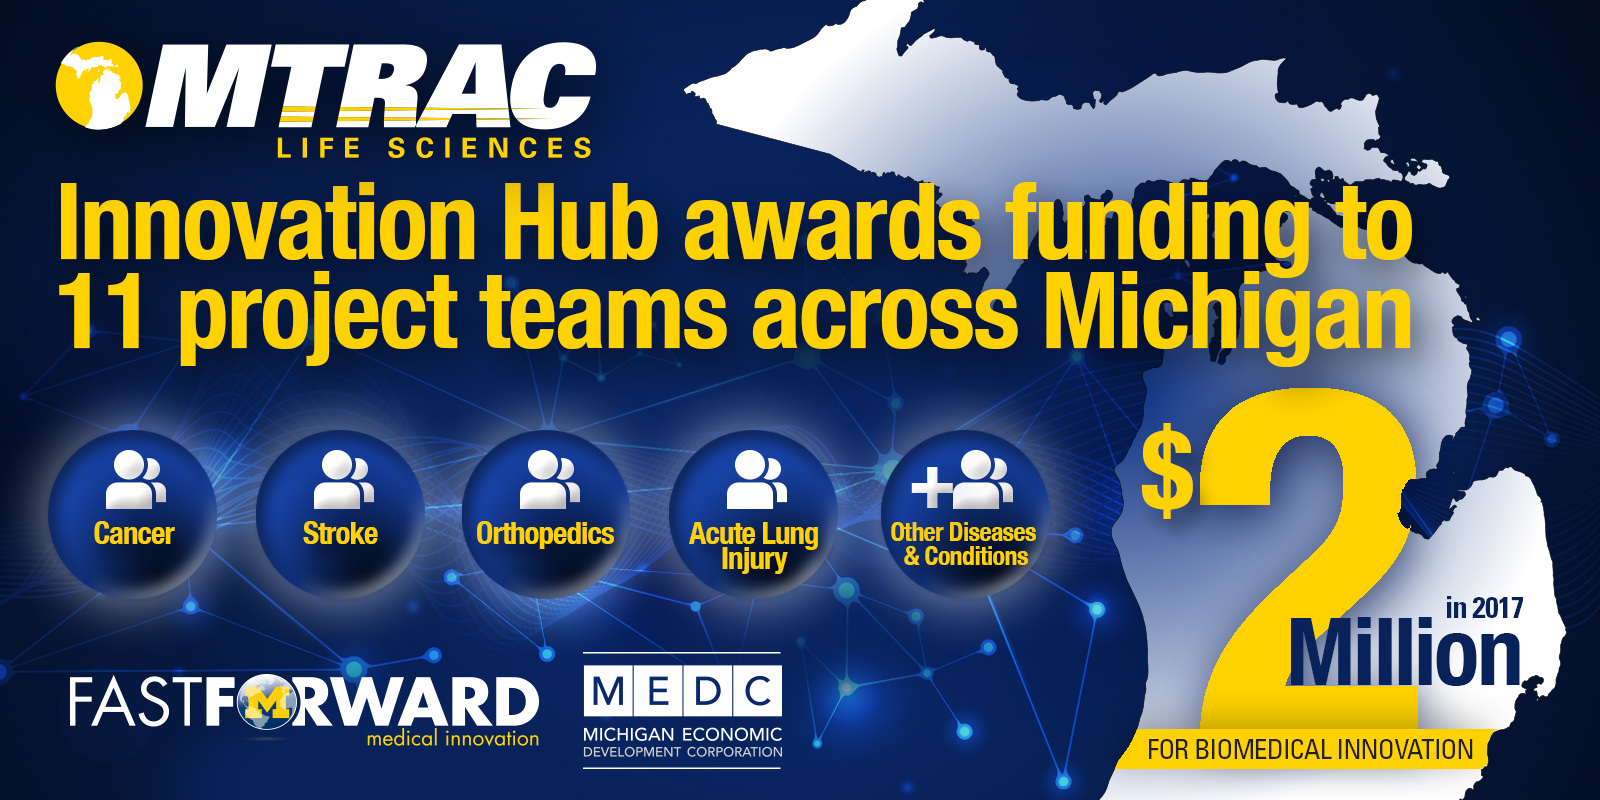 Innovation Hub awards funding to 11 project teams across Michigan